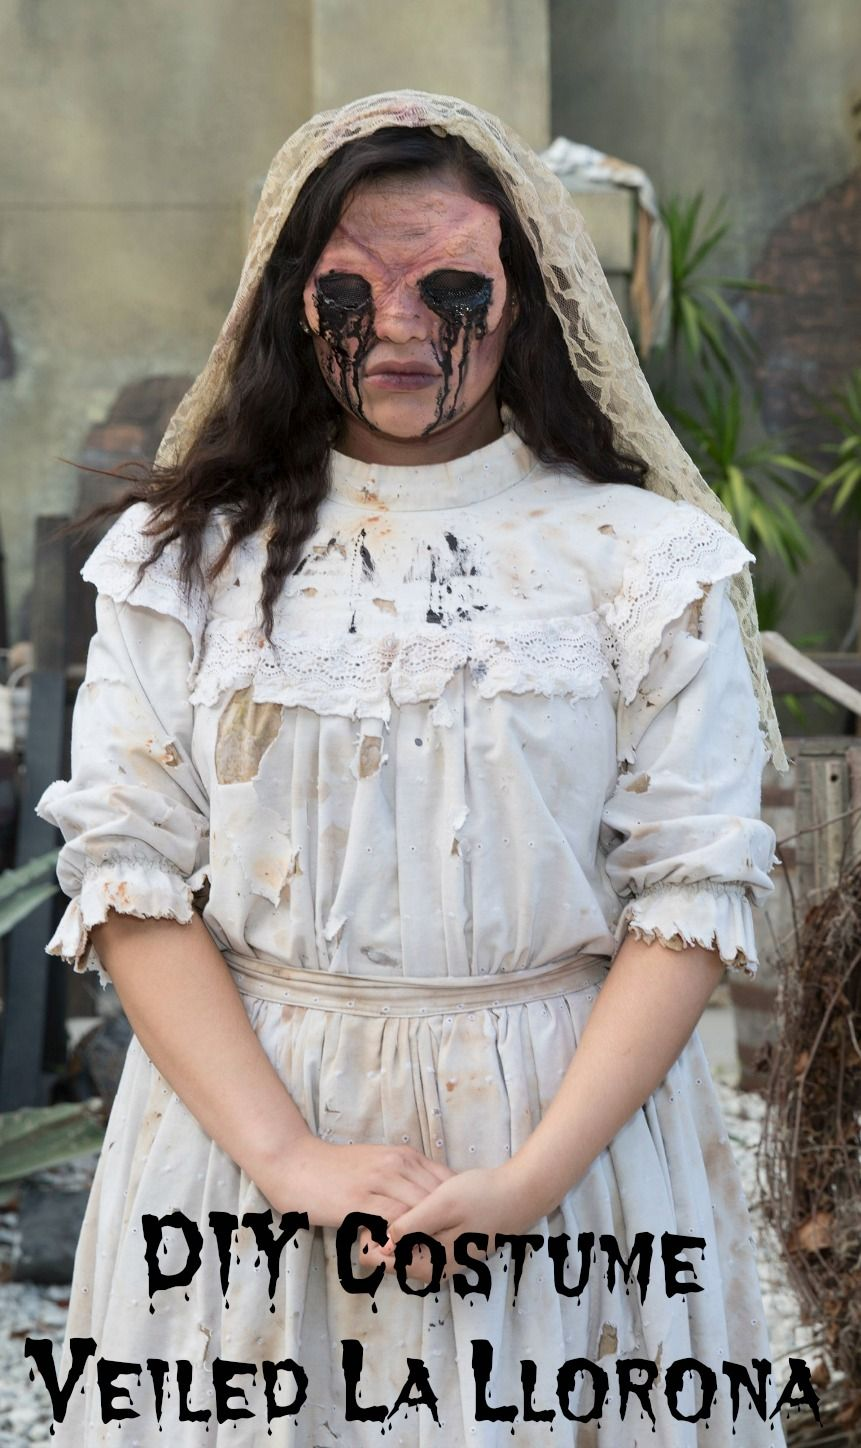 Last Minute Costume Idea Be La Llorona the weeping woman | Easy diy ...